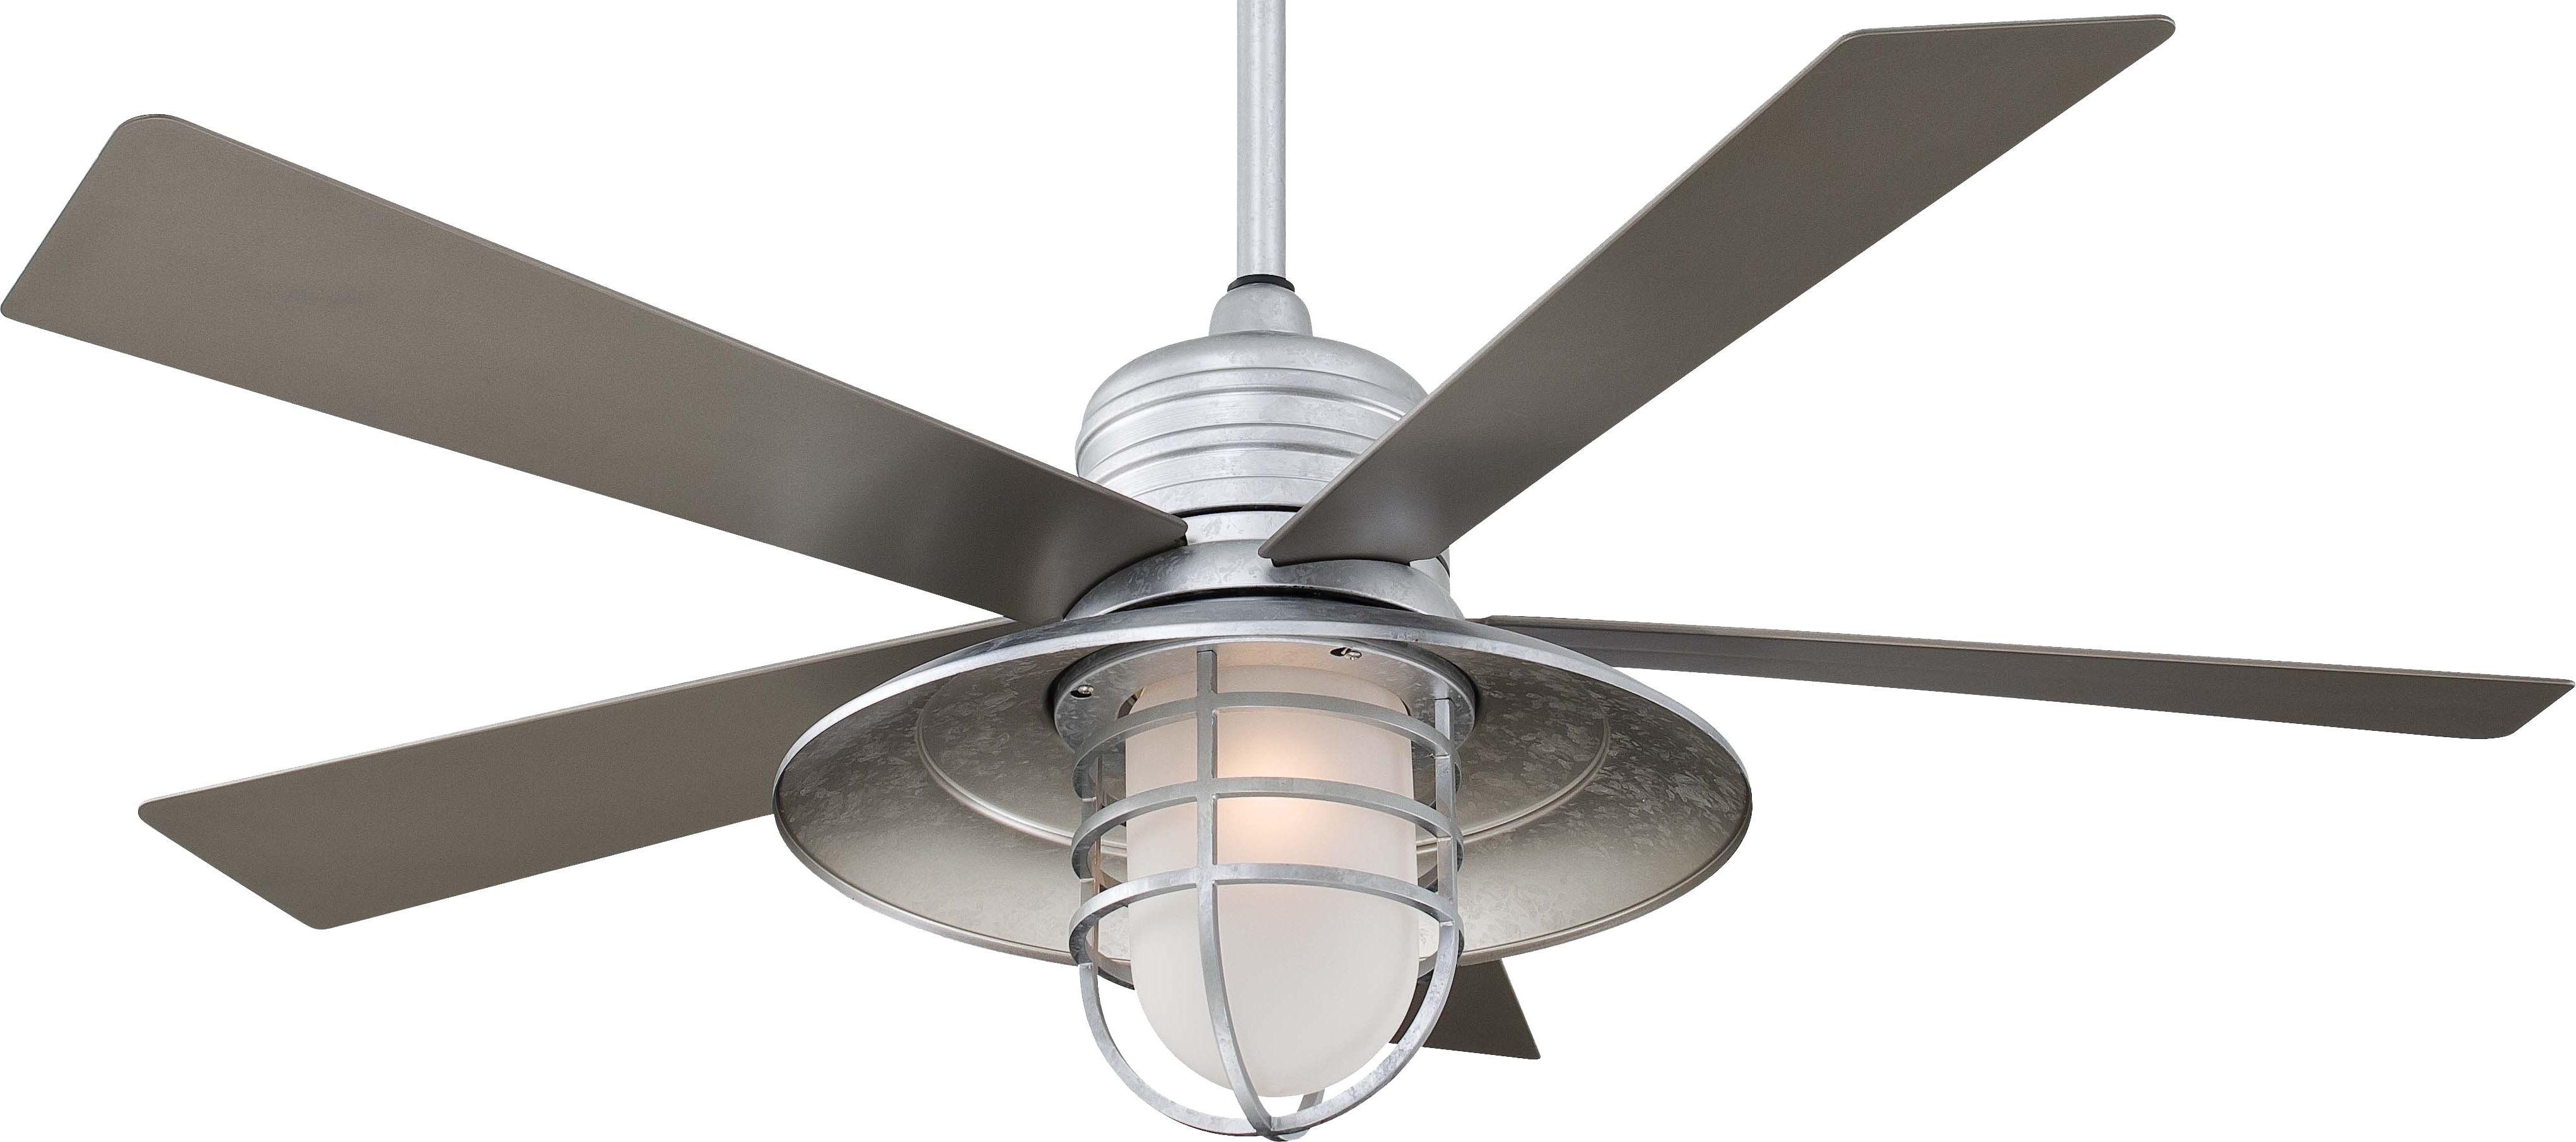 Most Popular Large Indoor Ceiling Fans With Lights Outstanding Outdoor Ceiling Throughout Large Outdoor Ceiling Fans With Lights (View 14 of 20)